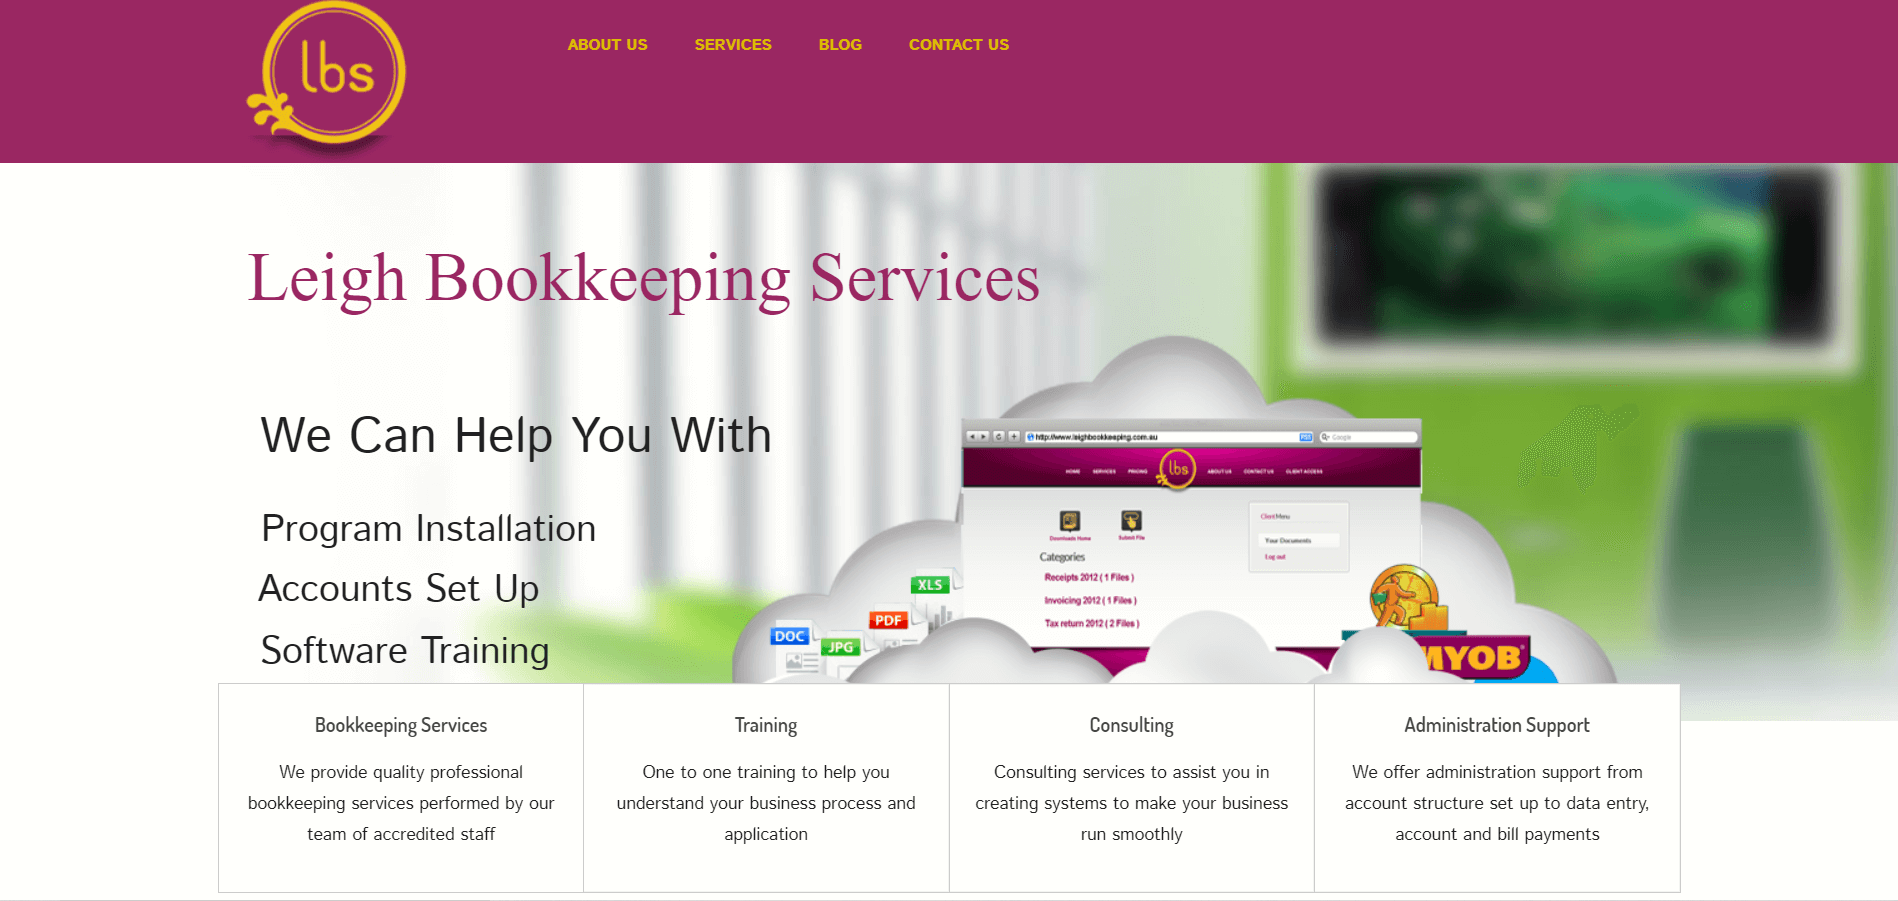 Leigh Bookkeeping Services